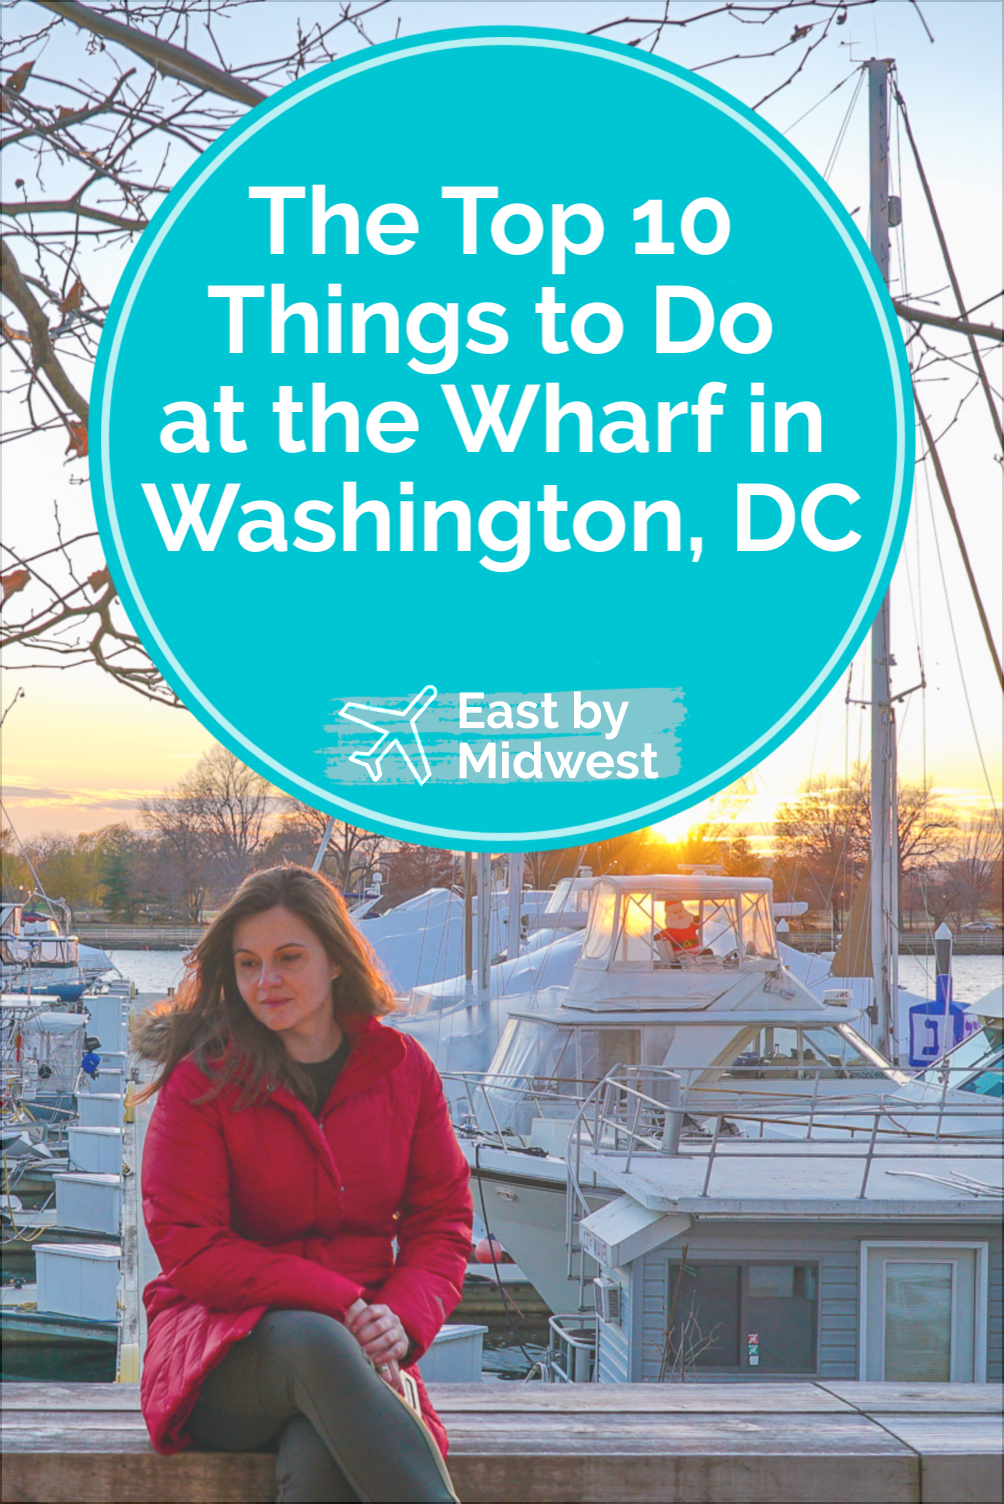 The Top 10 Things to Do at the Wharf in Washington, DC